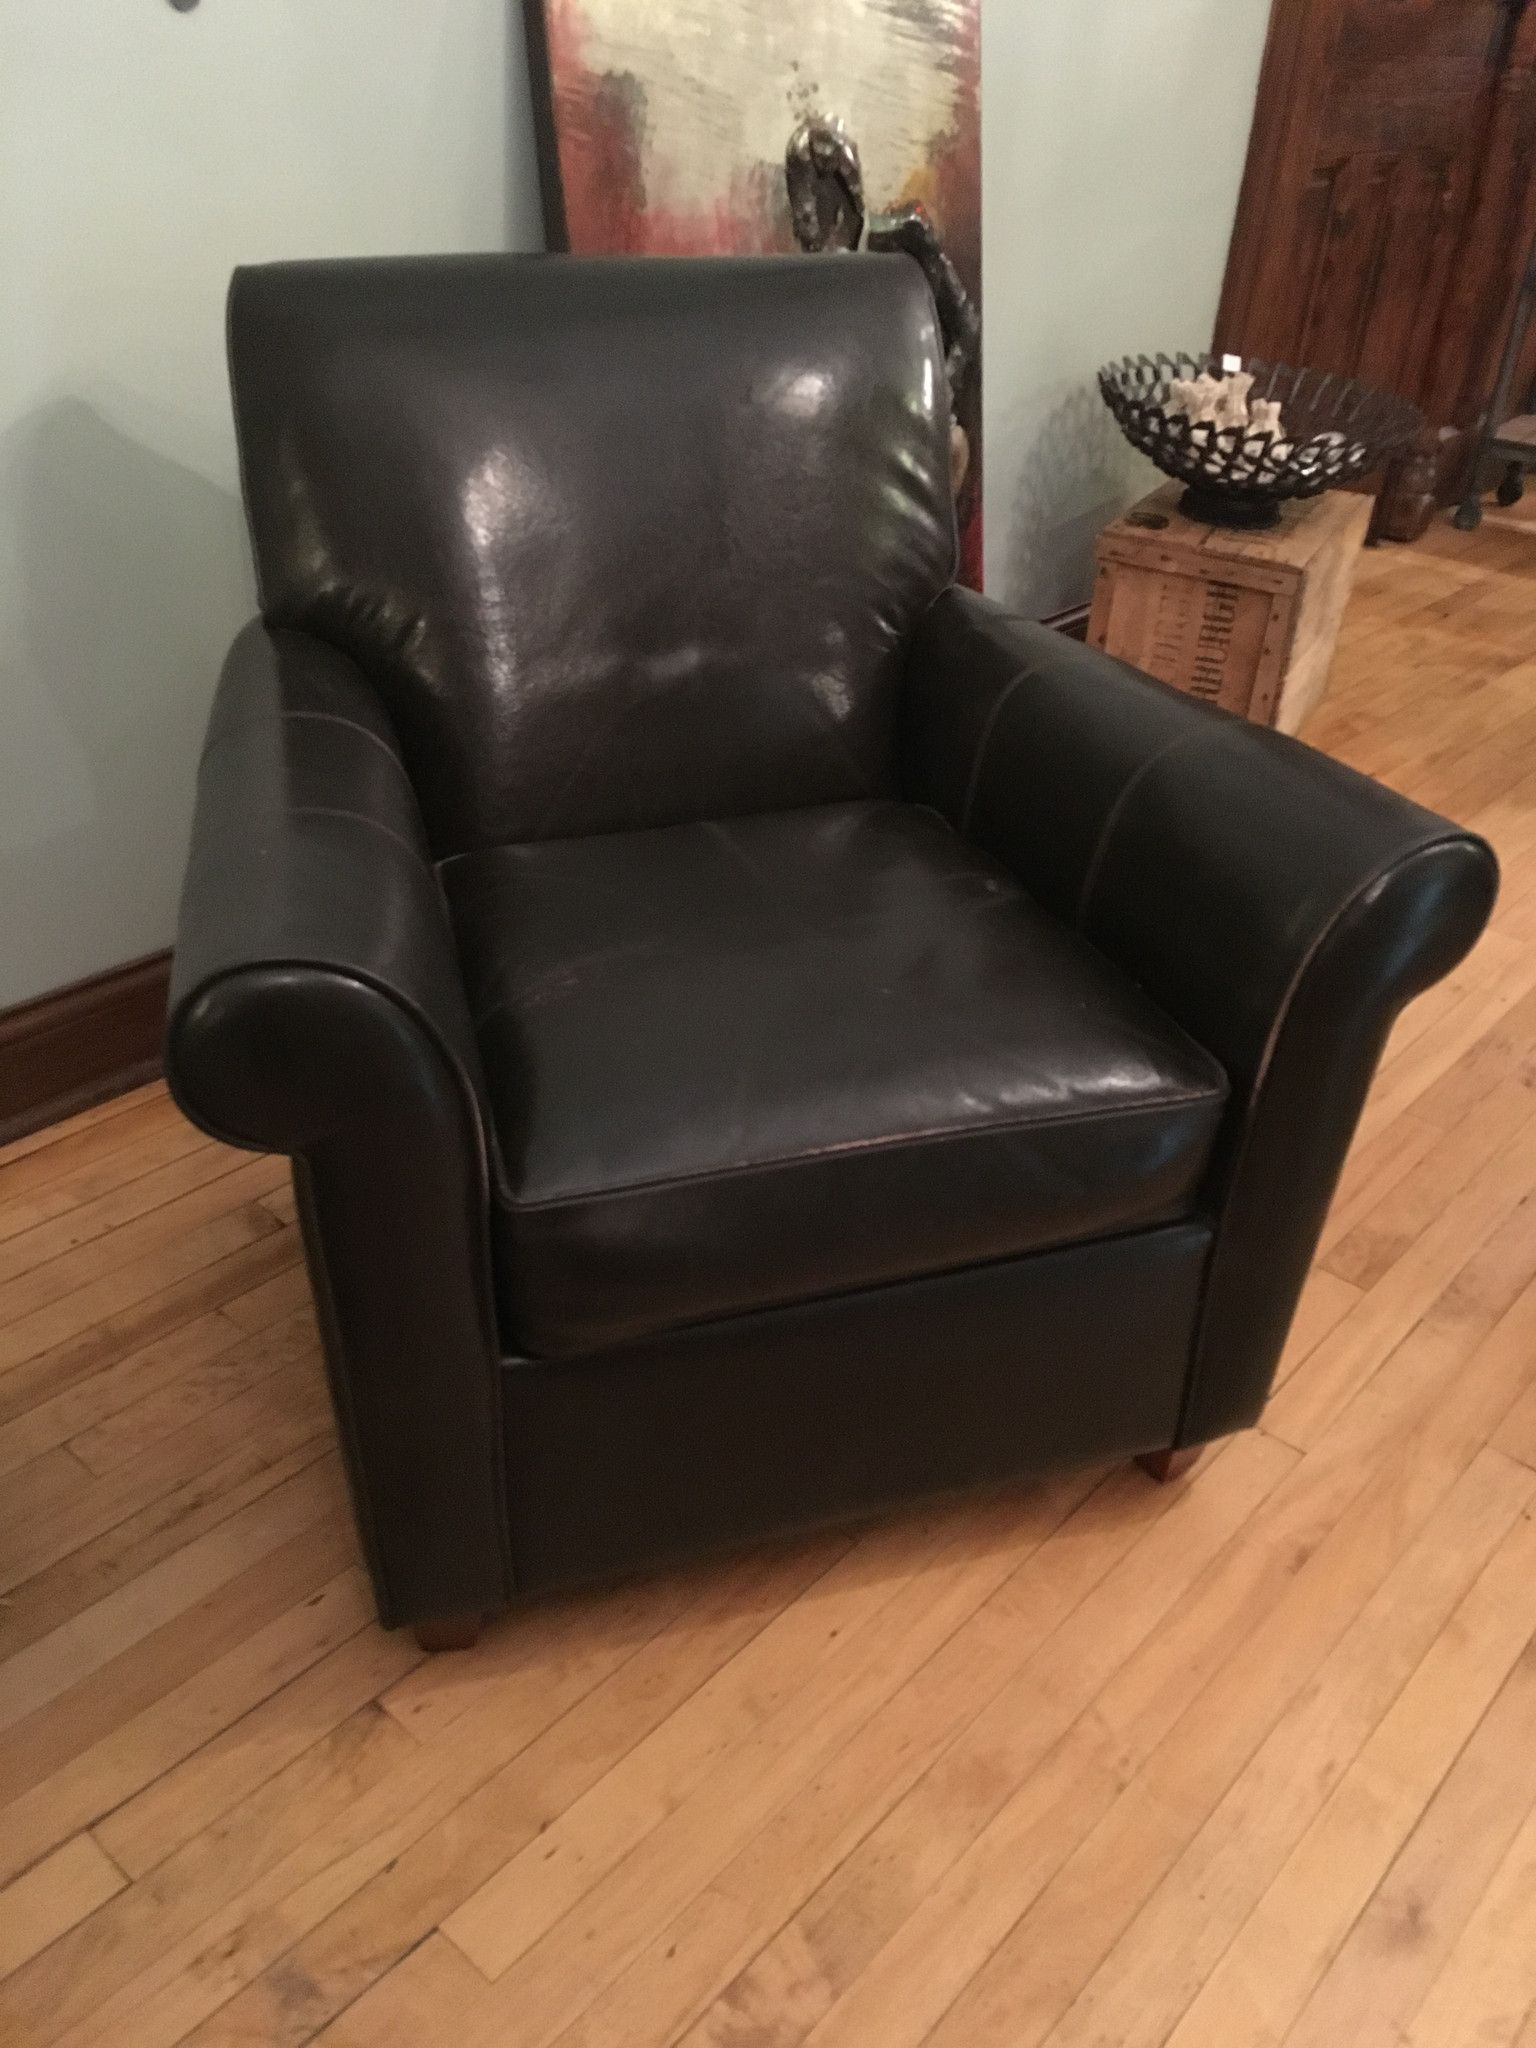 Bauhaus Leather Club Chair Consignment Piece & Bauhaus Leather Club Chair Consignment Piece | Products | Pinterest ...